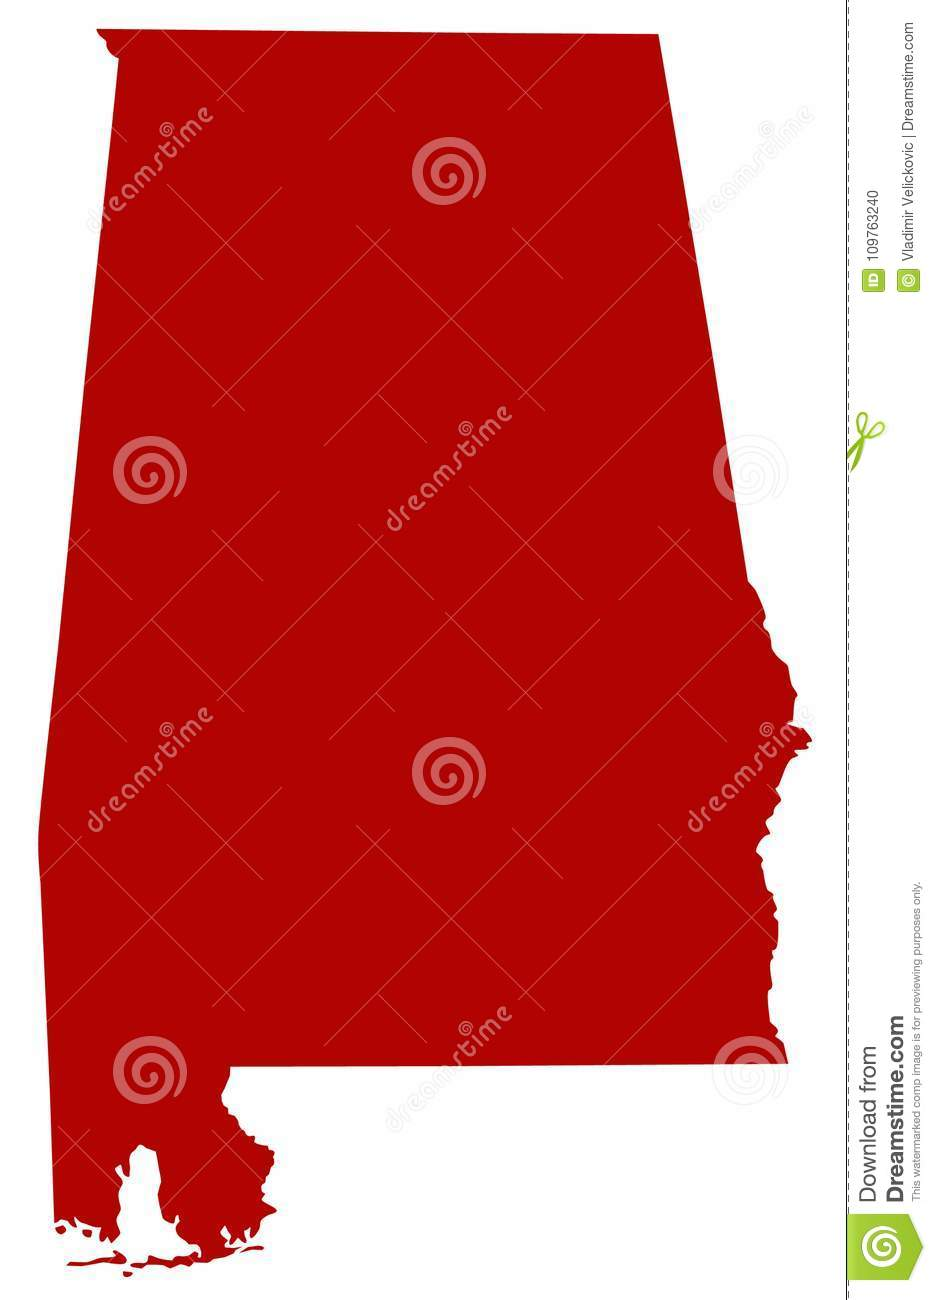 Alabama Map - State Of The United States Stock Vector ...